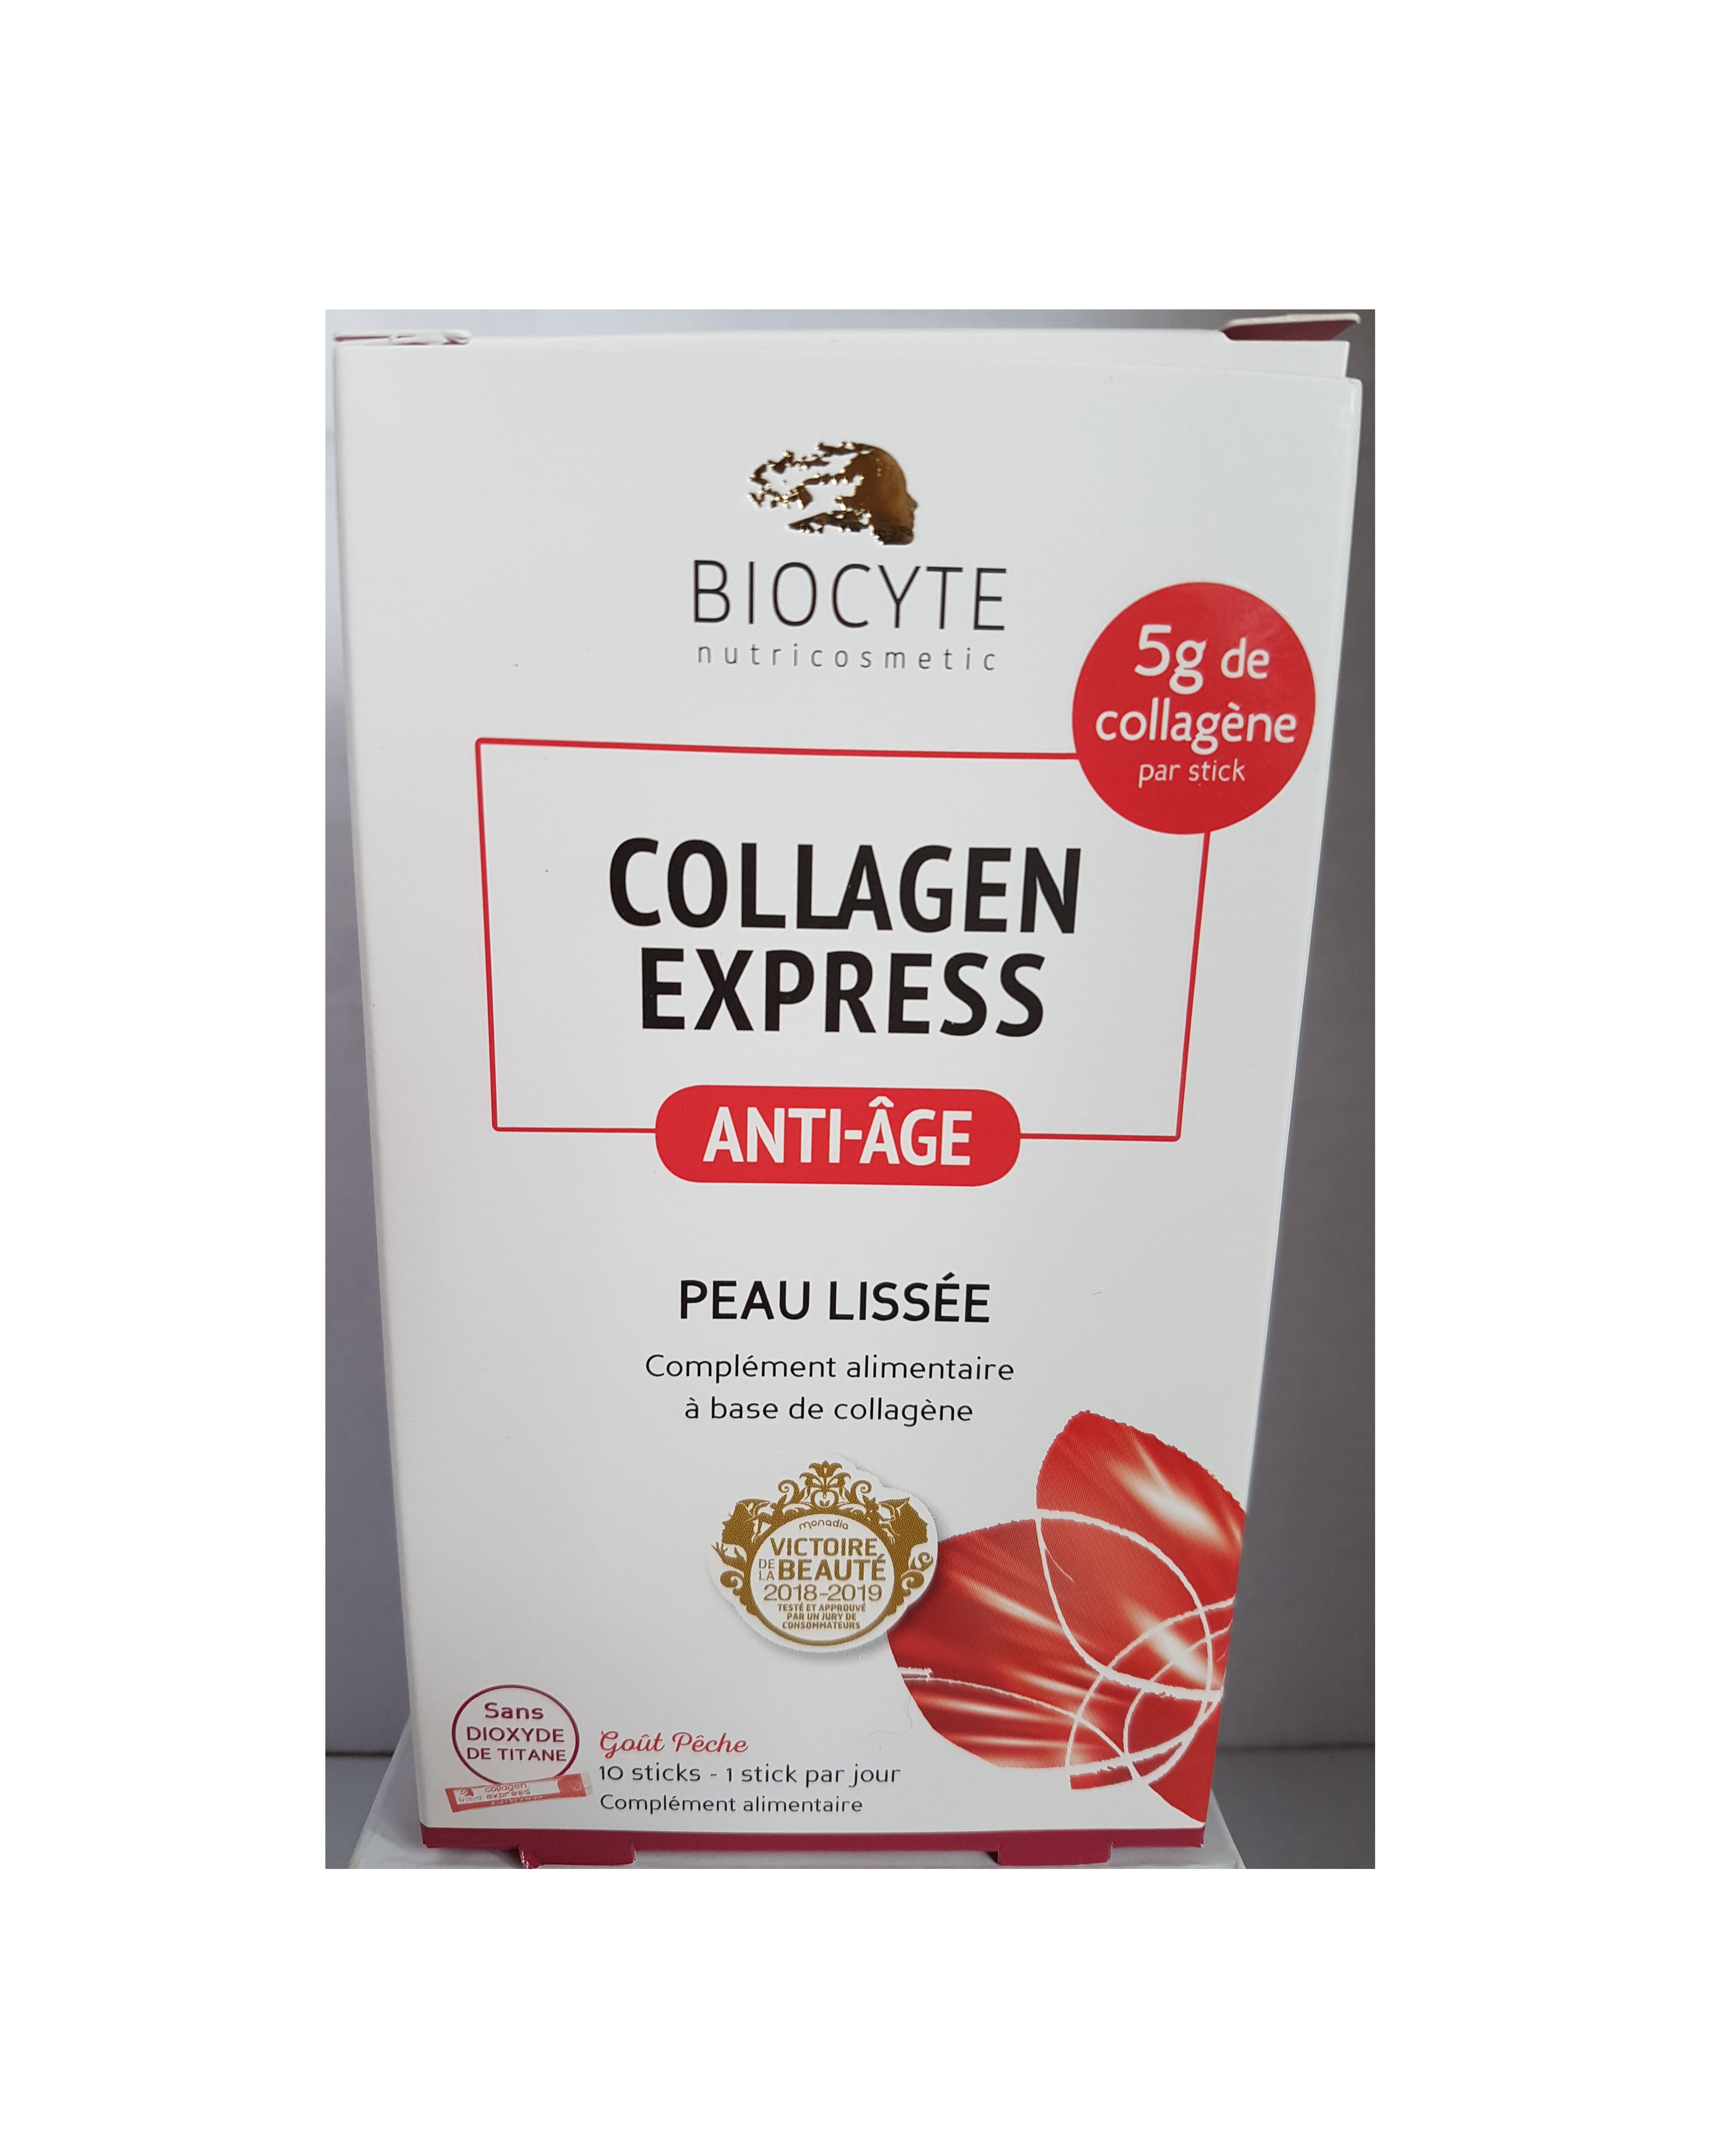 biocyte-collagen-express-sticks.jpg